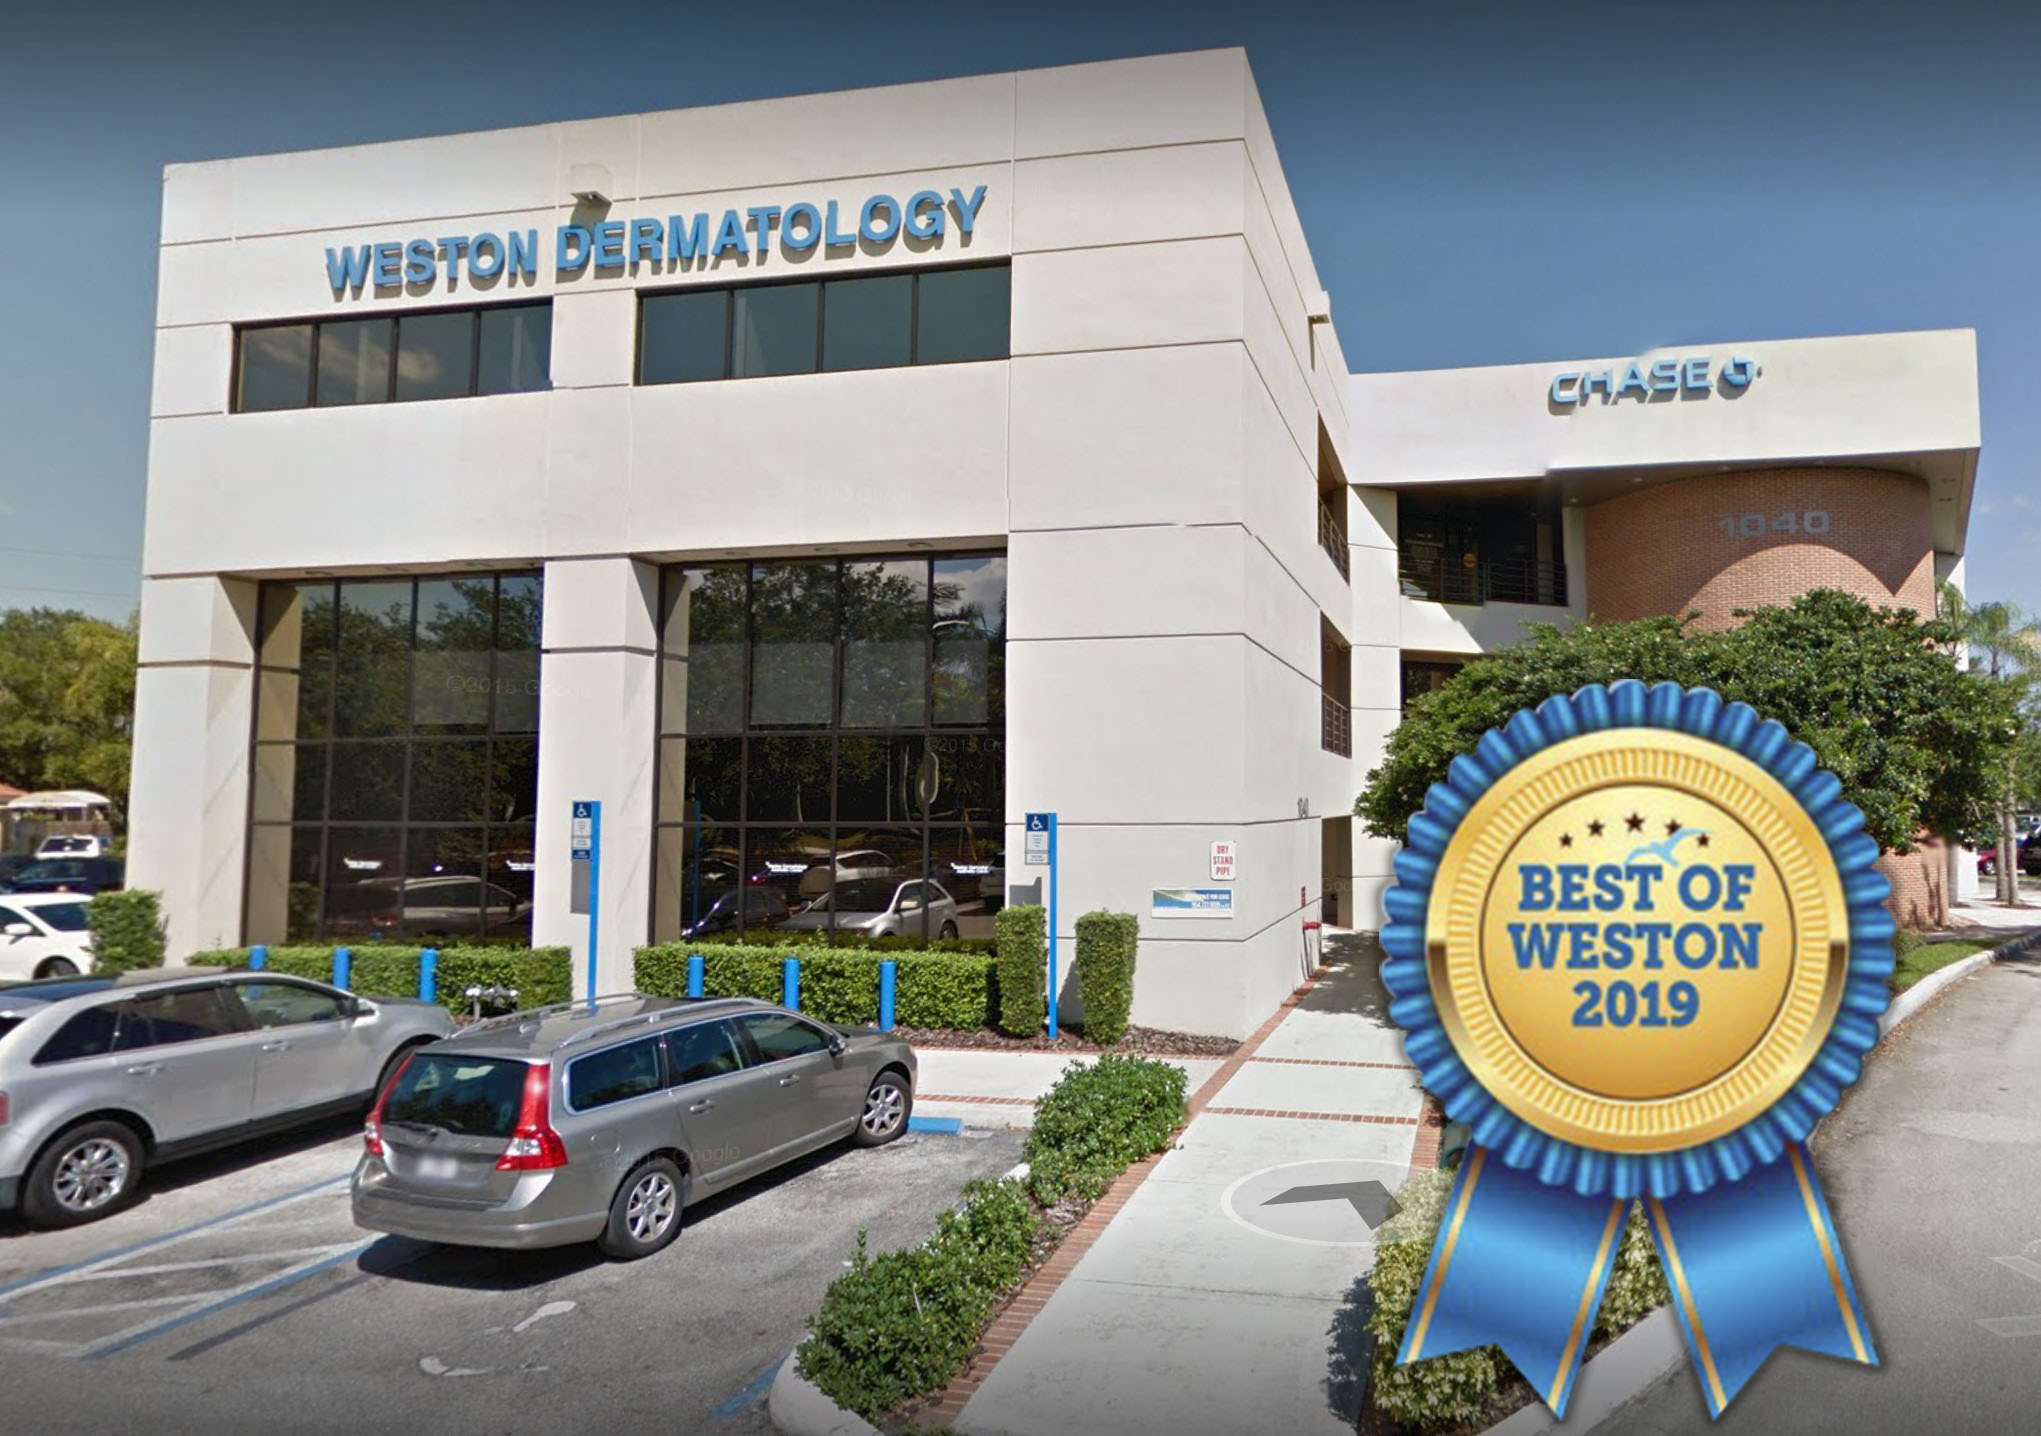 reviews-weston-dermatology-patient-survey-portal-Weston-Dermatology-USA-dr-sterling-specialties-weston-dermatology-laser-botox-kybella-services